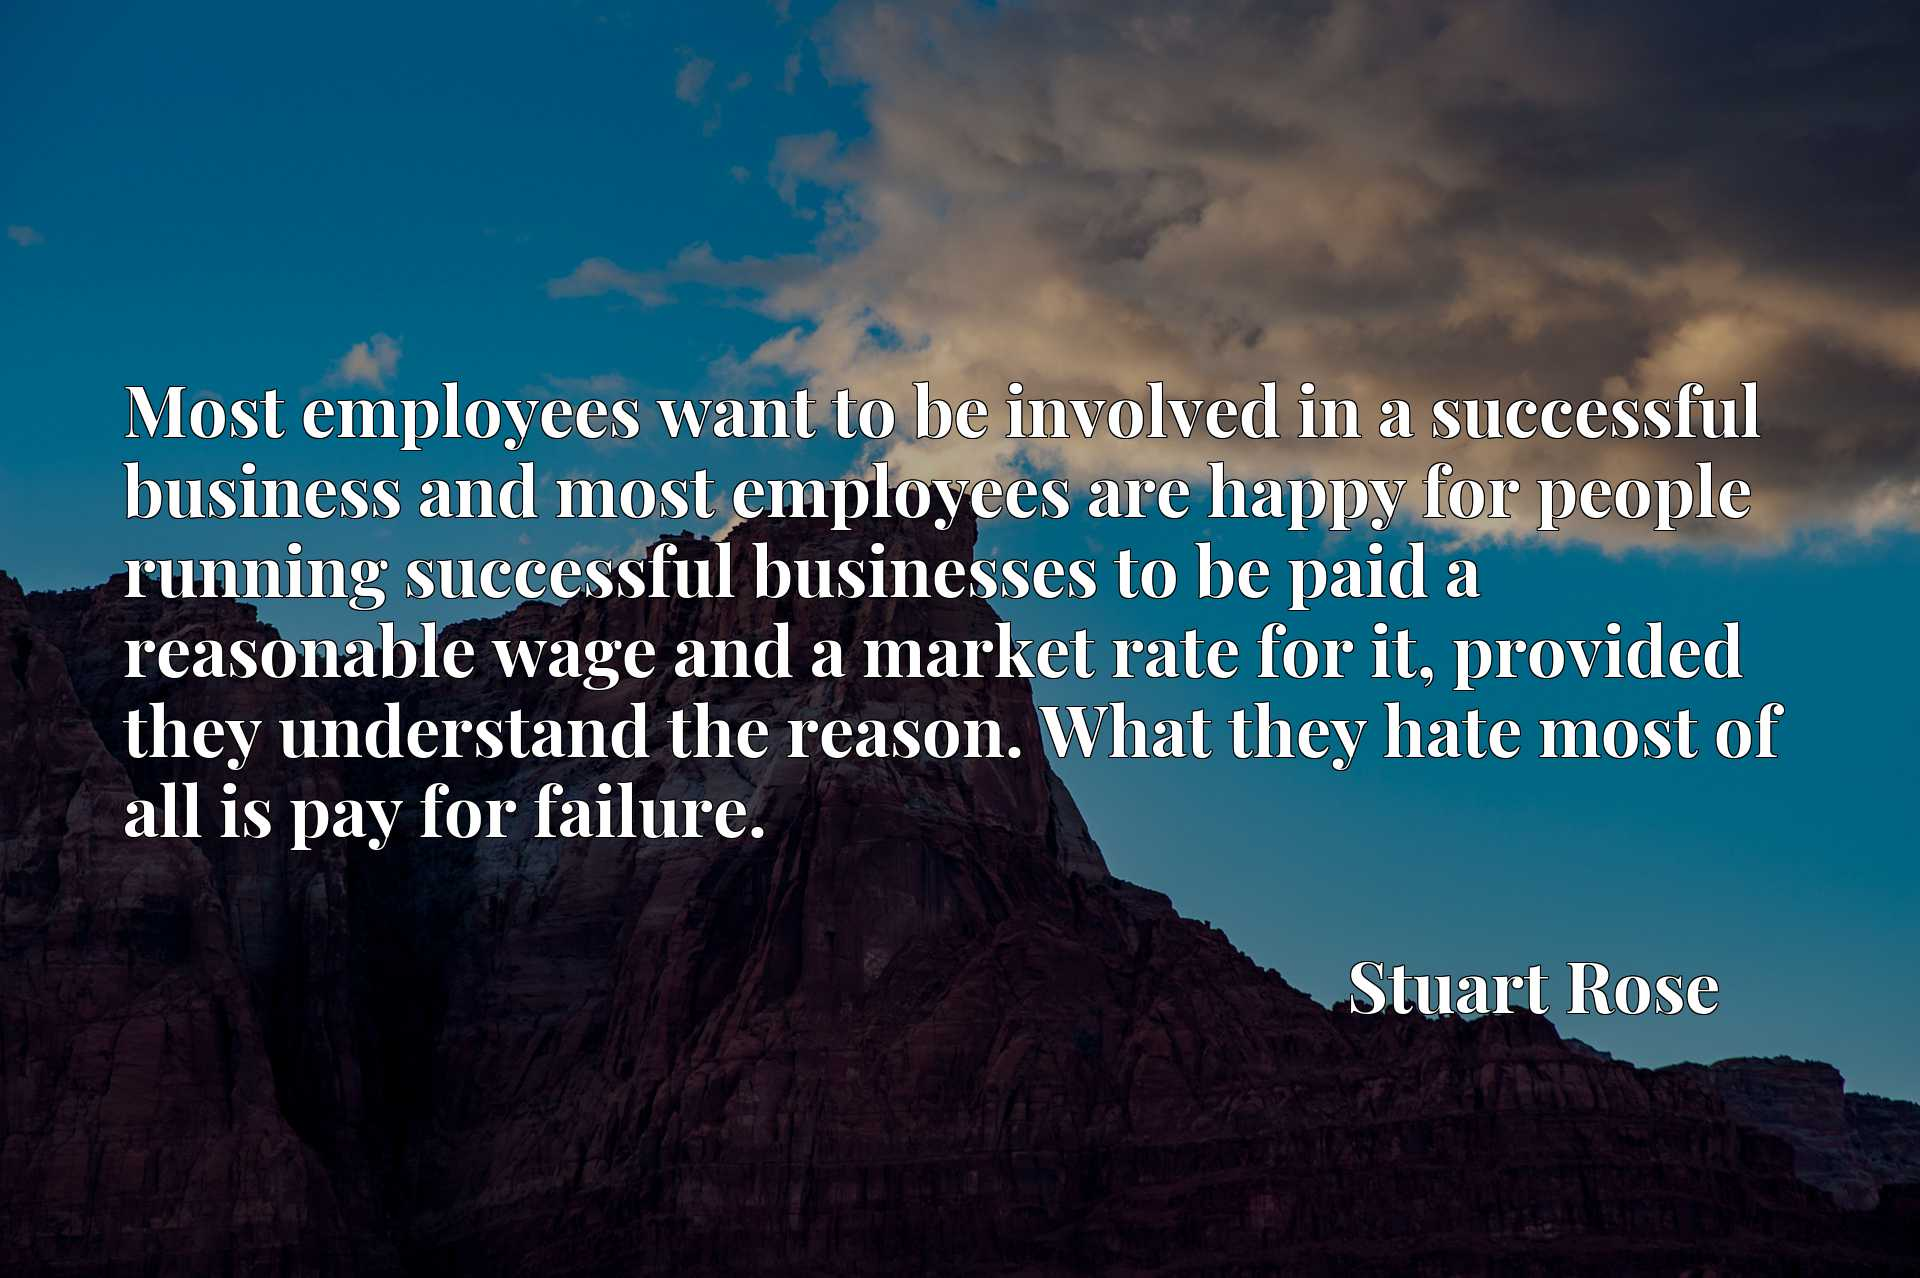 Most employees want to be involved in a successful business and most employees are happy for people running successful businesses to be paid a reasonable wage and a market rate for it, provided they understand the reason. What they hate most of all is pay for failure.